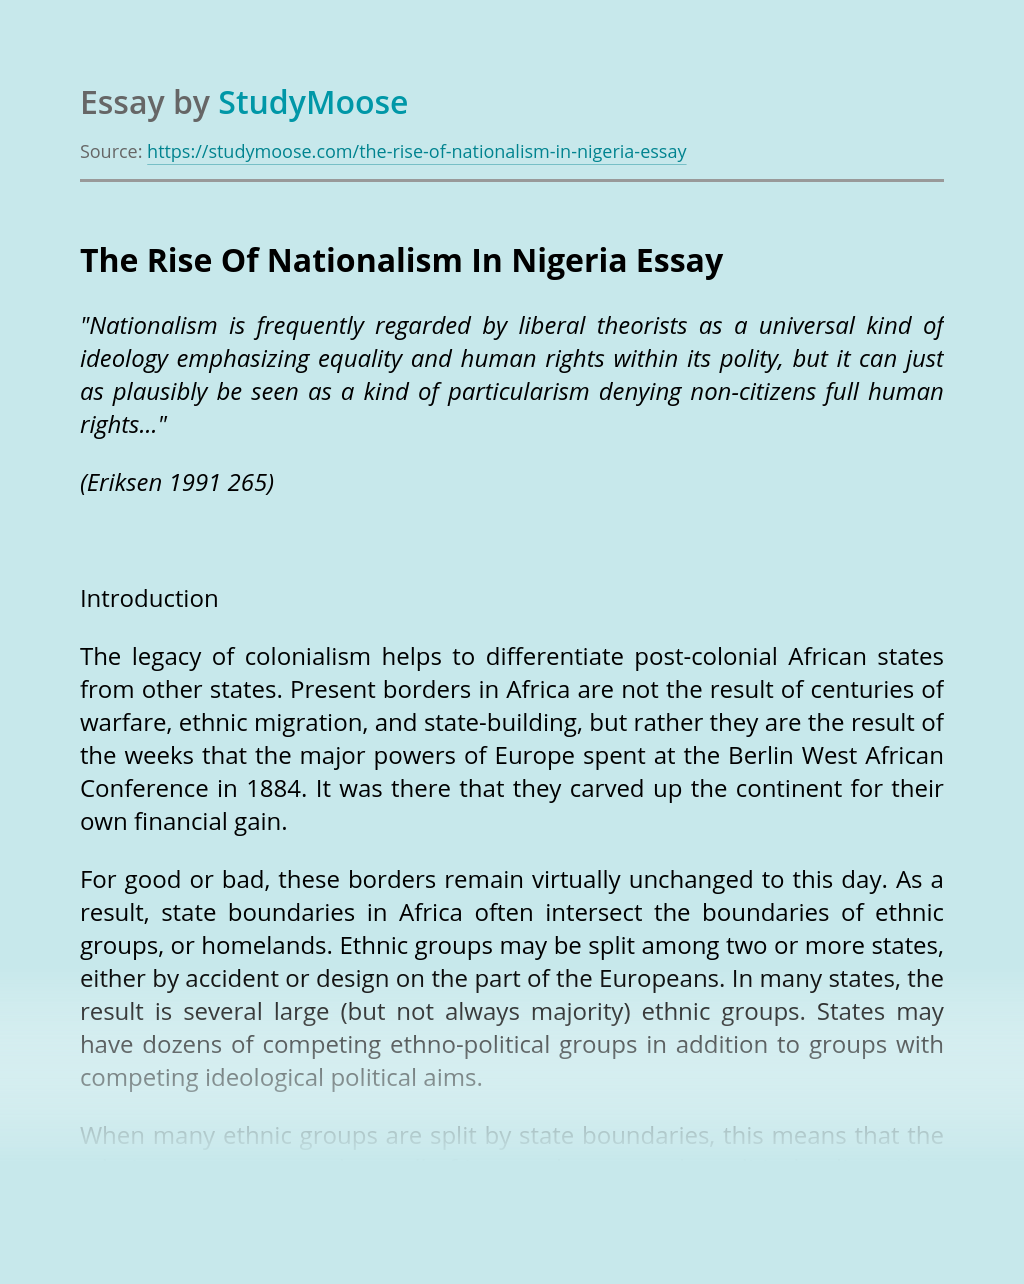 The Rise Of Nationalism In Nigeria